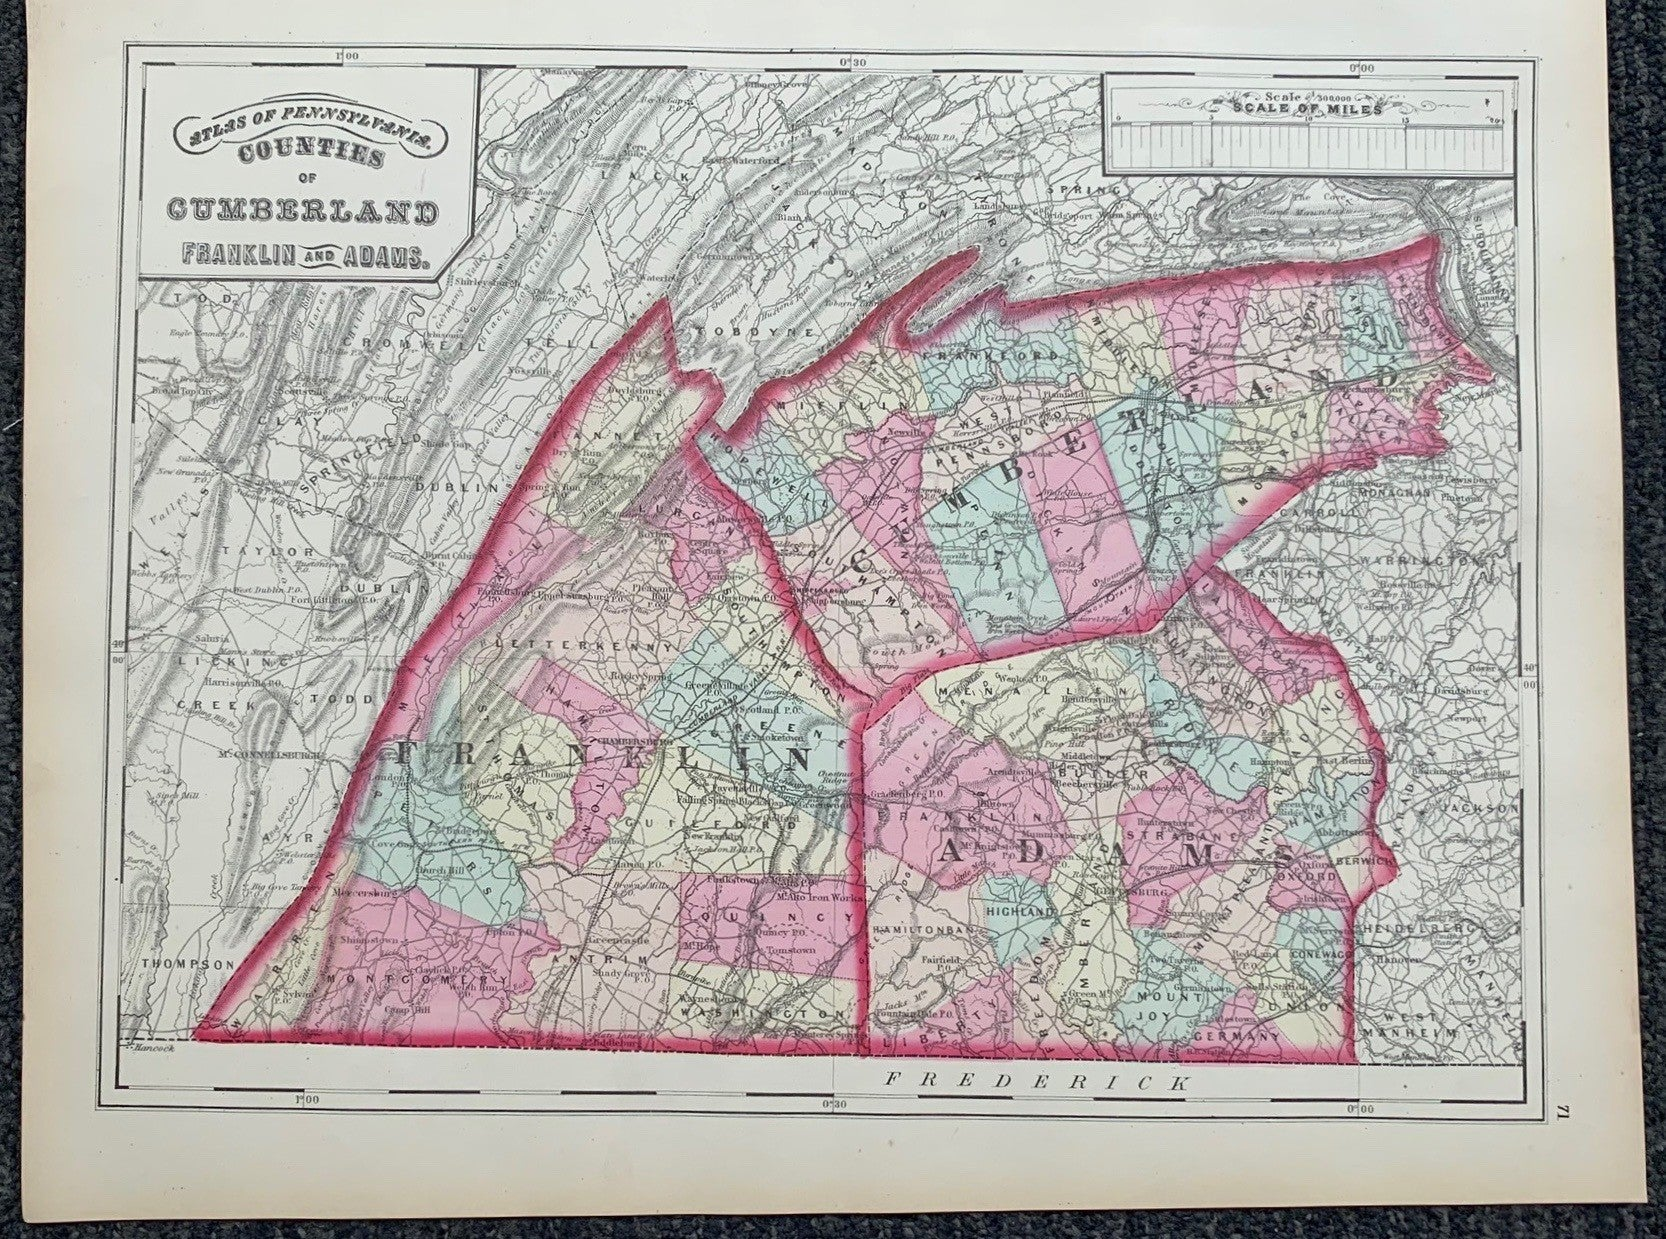 Atlas of Pennsylvania 11